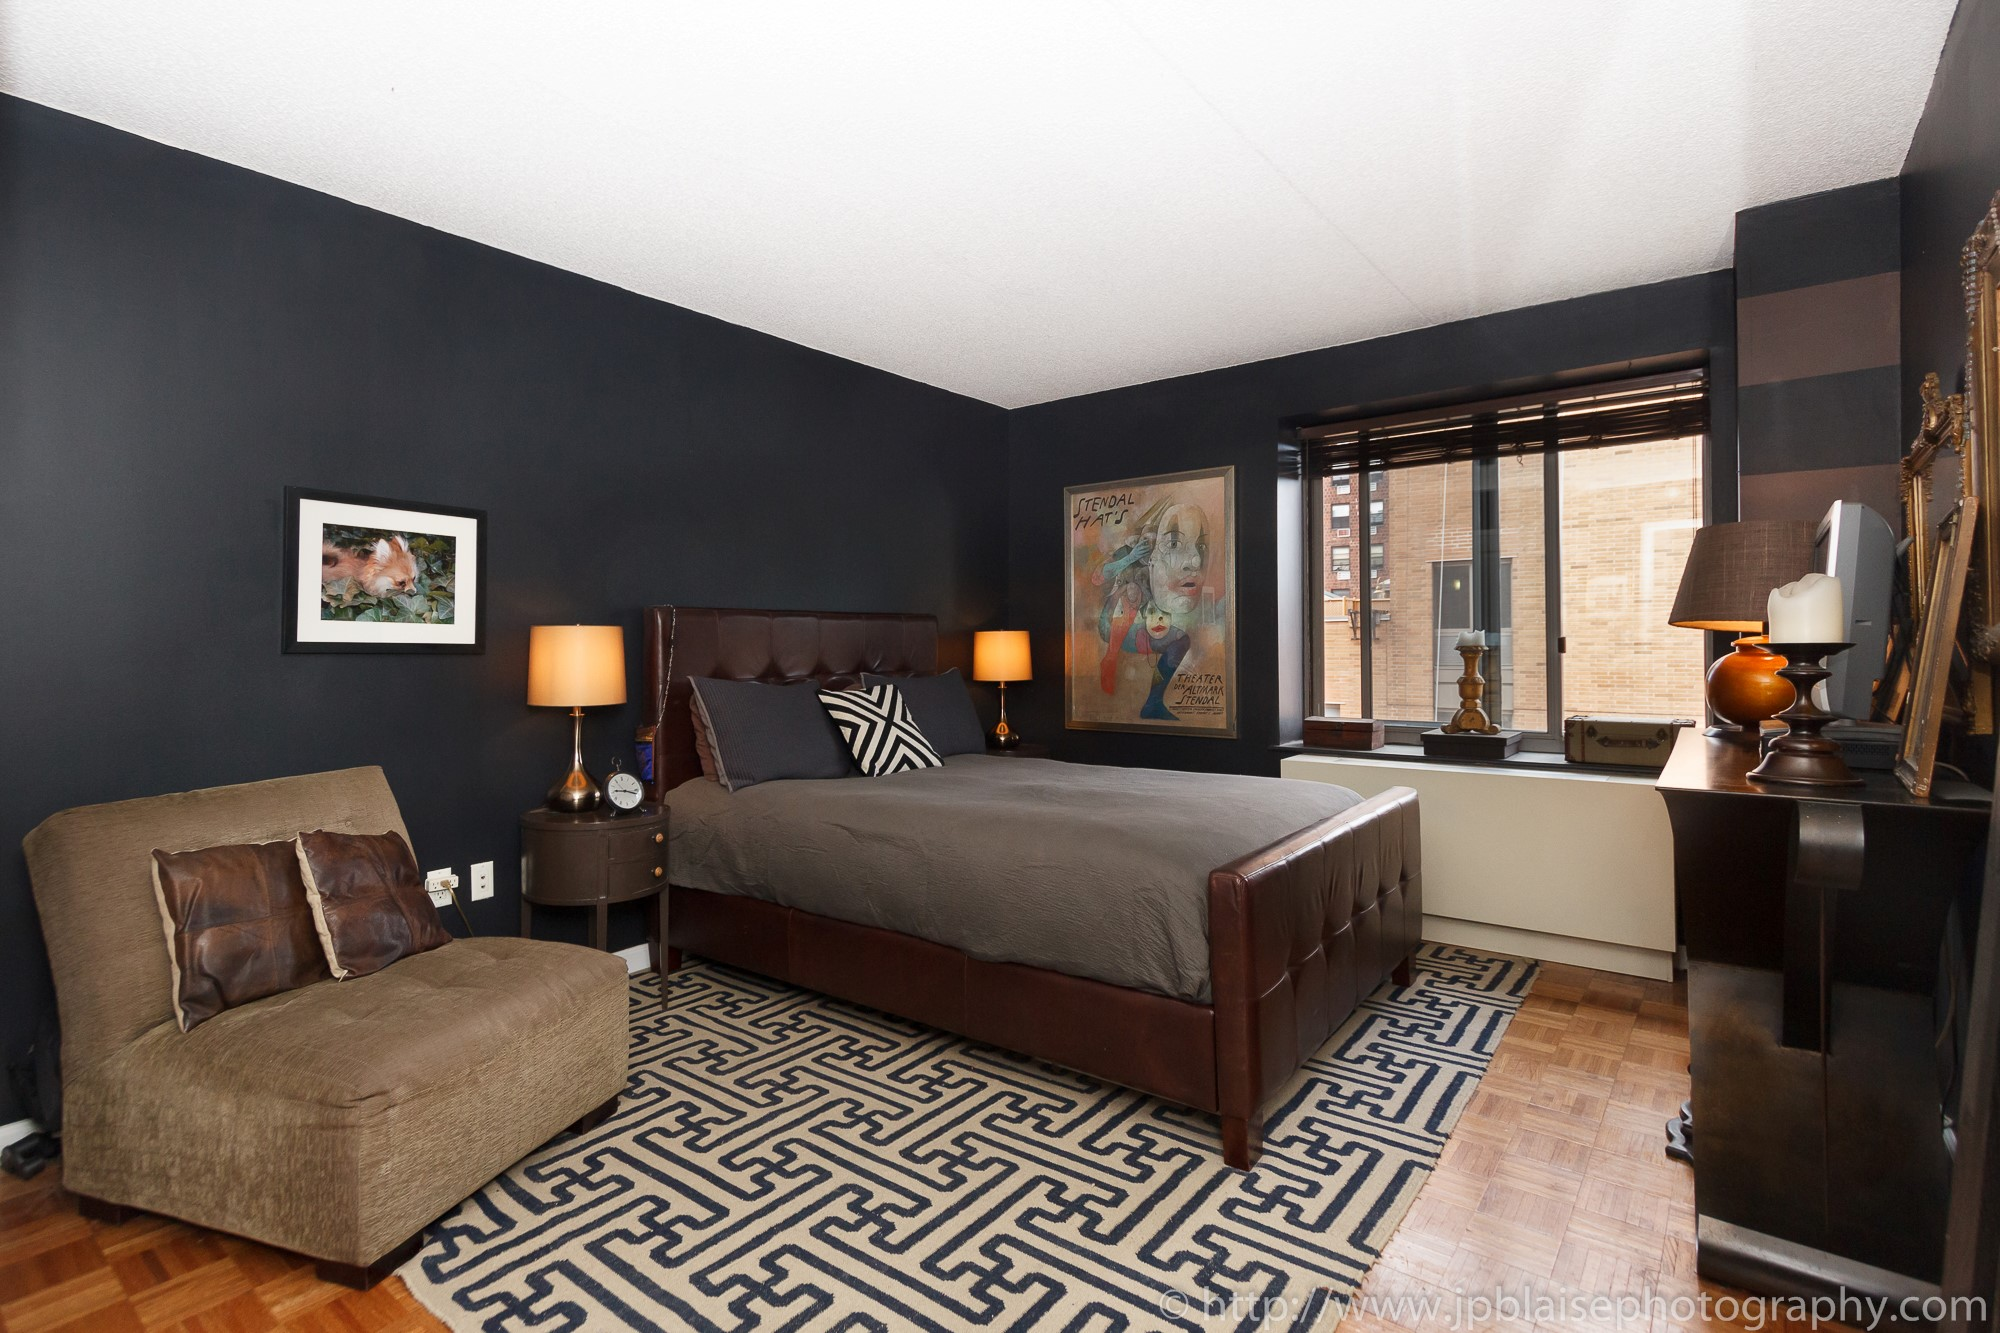 NYC apartment photographer central harlem condo unit new york city bedroom